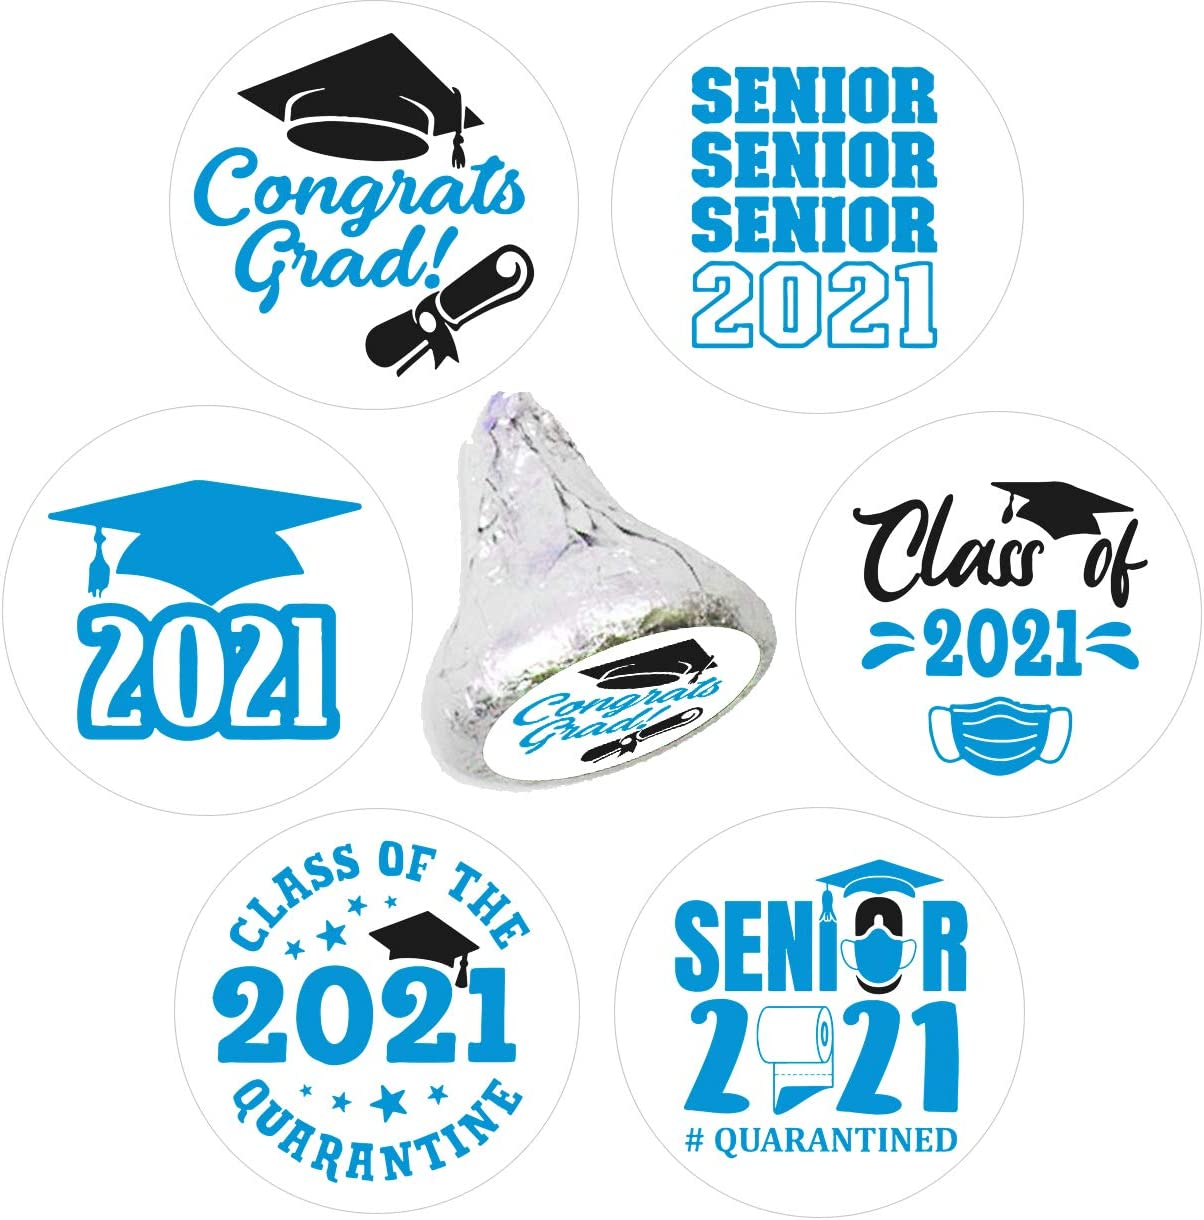 Class of 2021 Graduation Party Chocolate Stickers Labels-Graduation Party Decorations-270 Stickers(by-12)